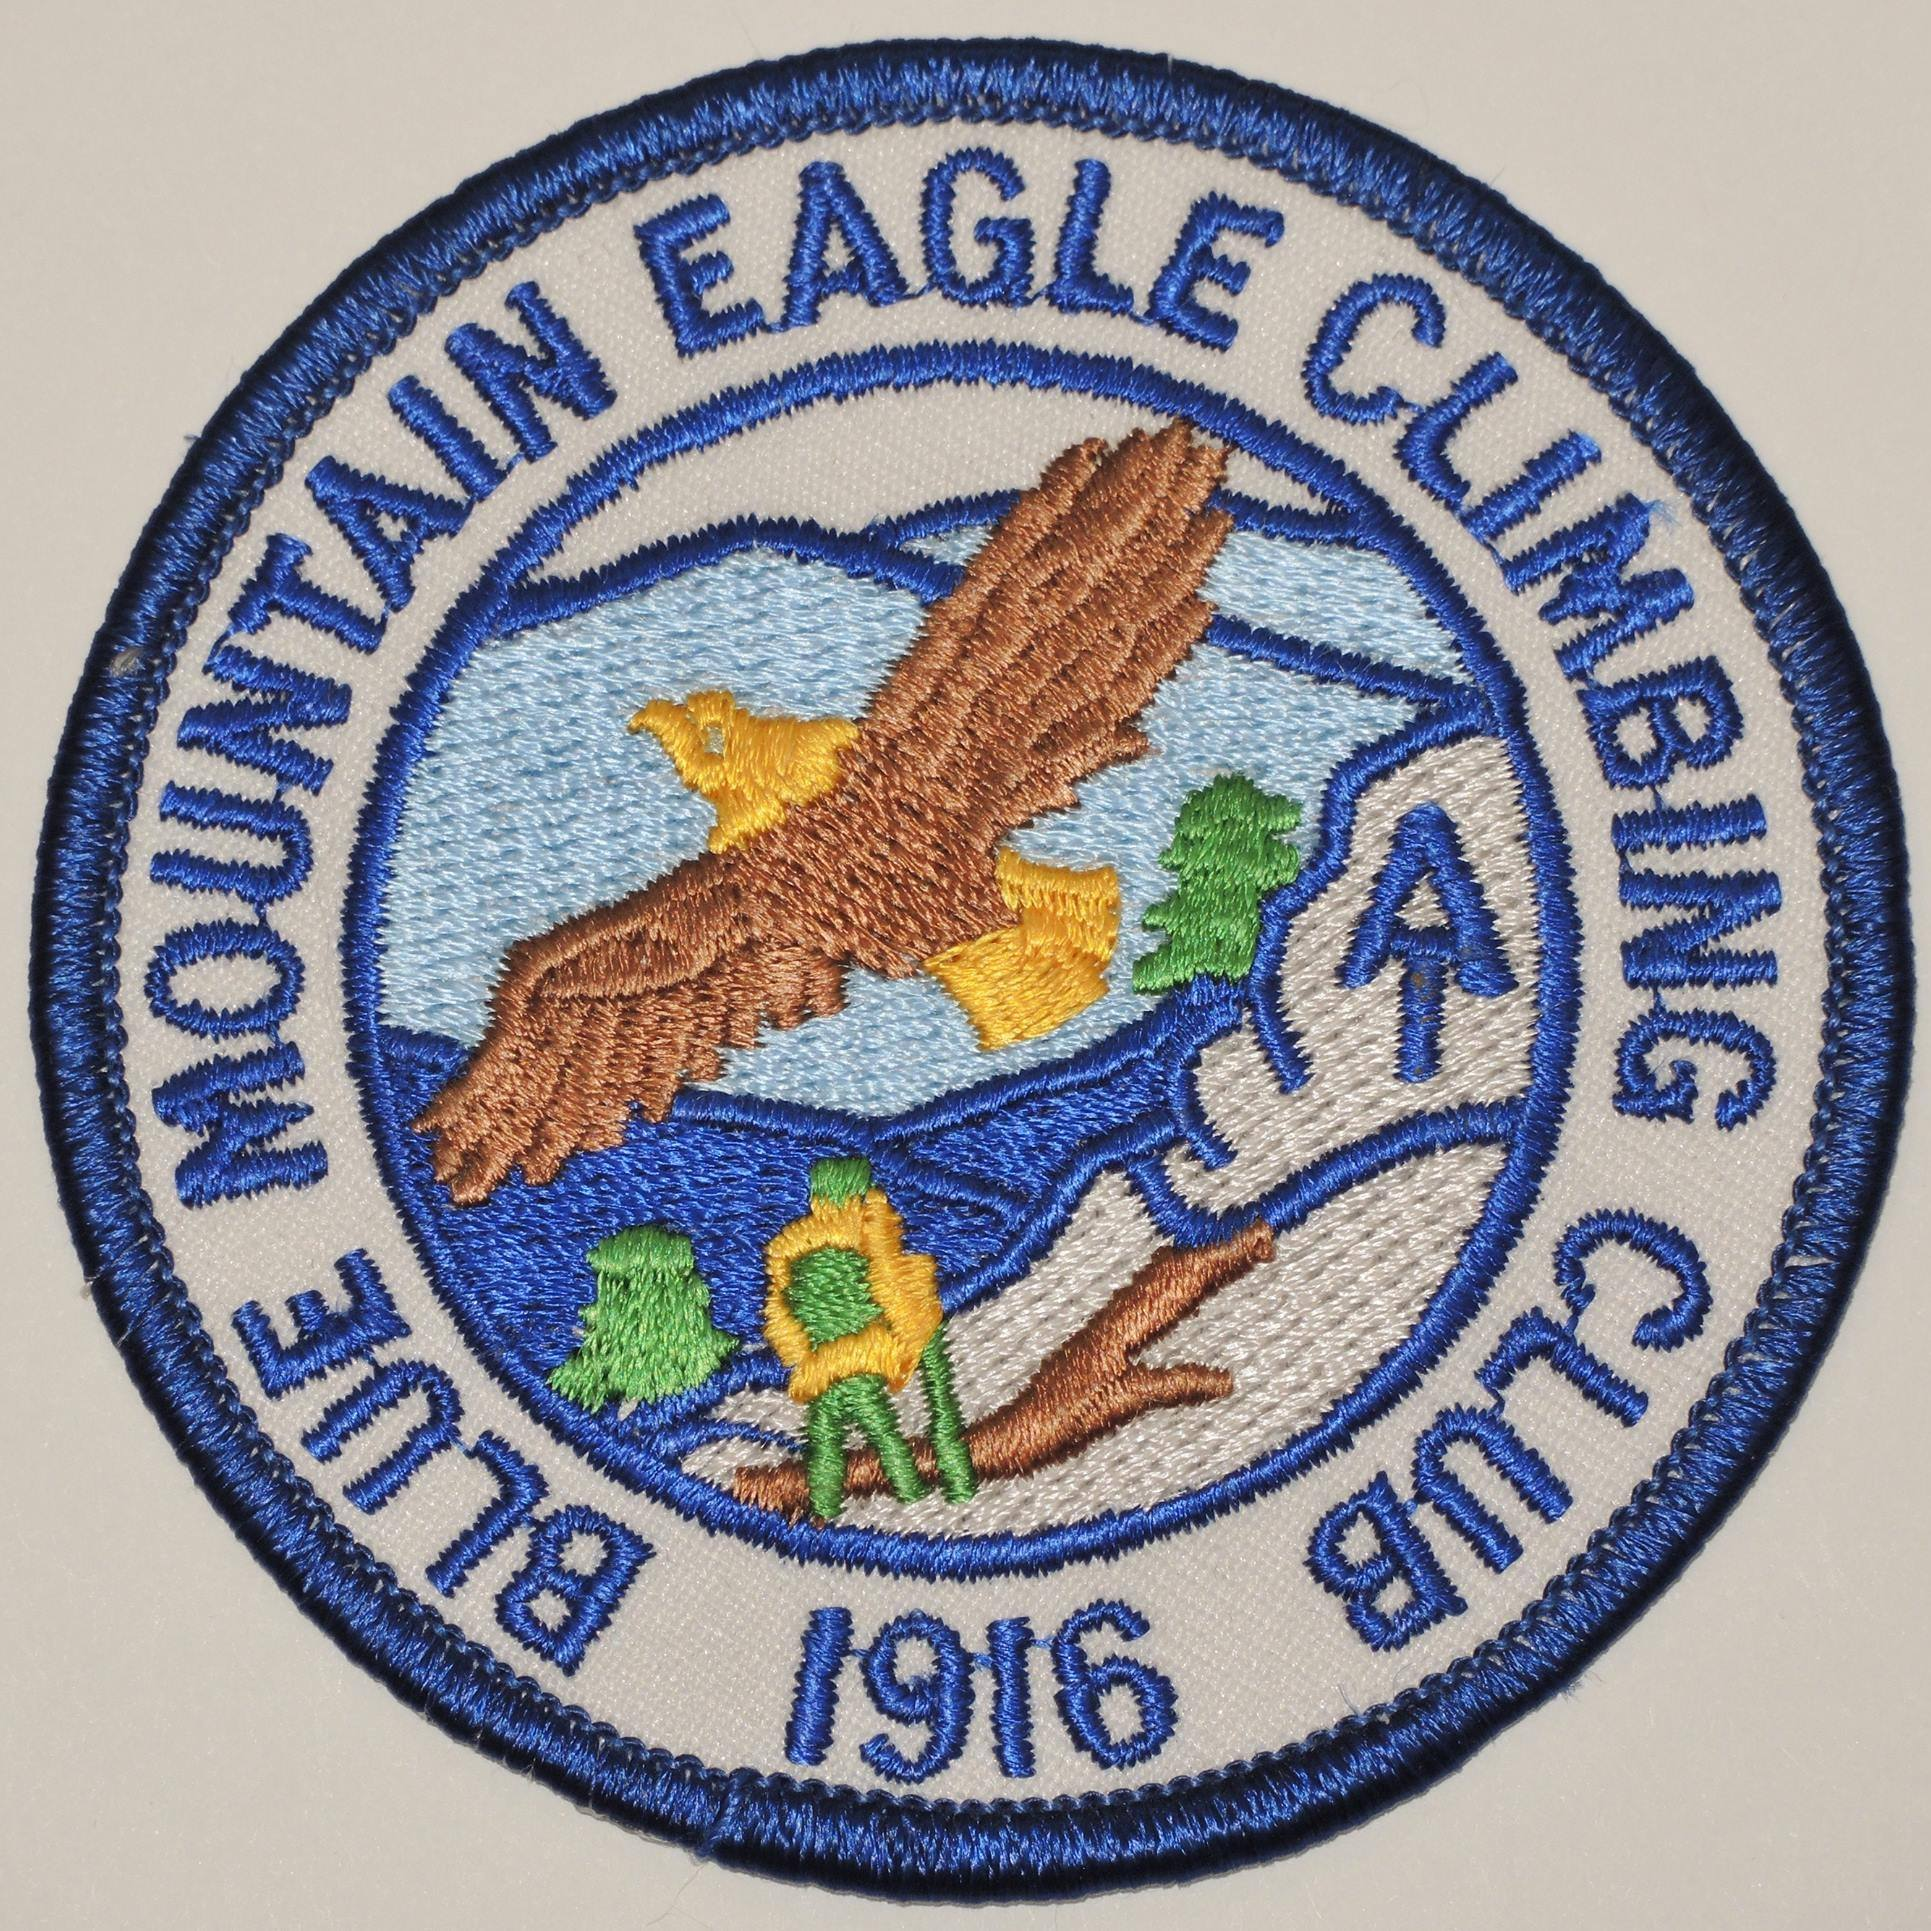 Thank you from the Blue Mountain Eagle Climbing Club